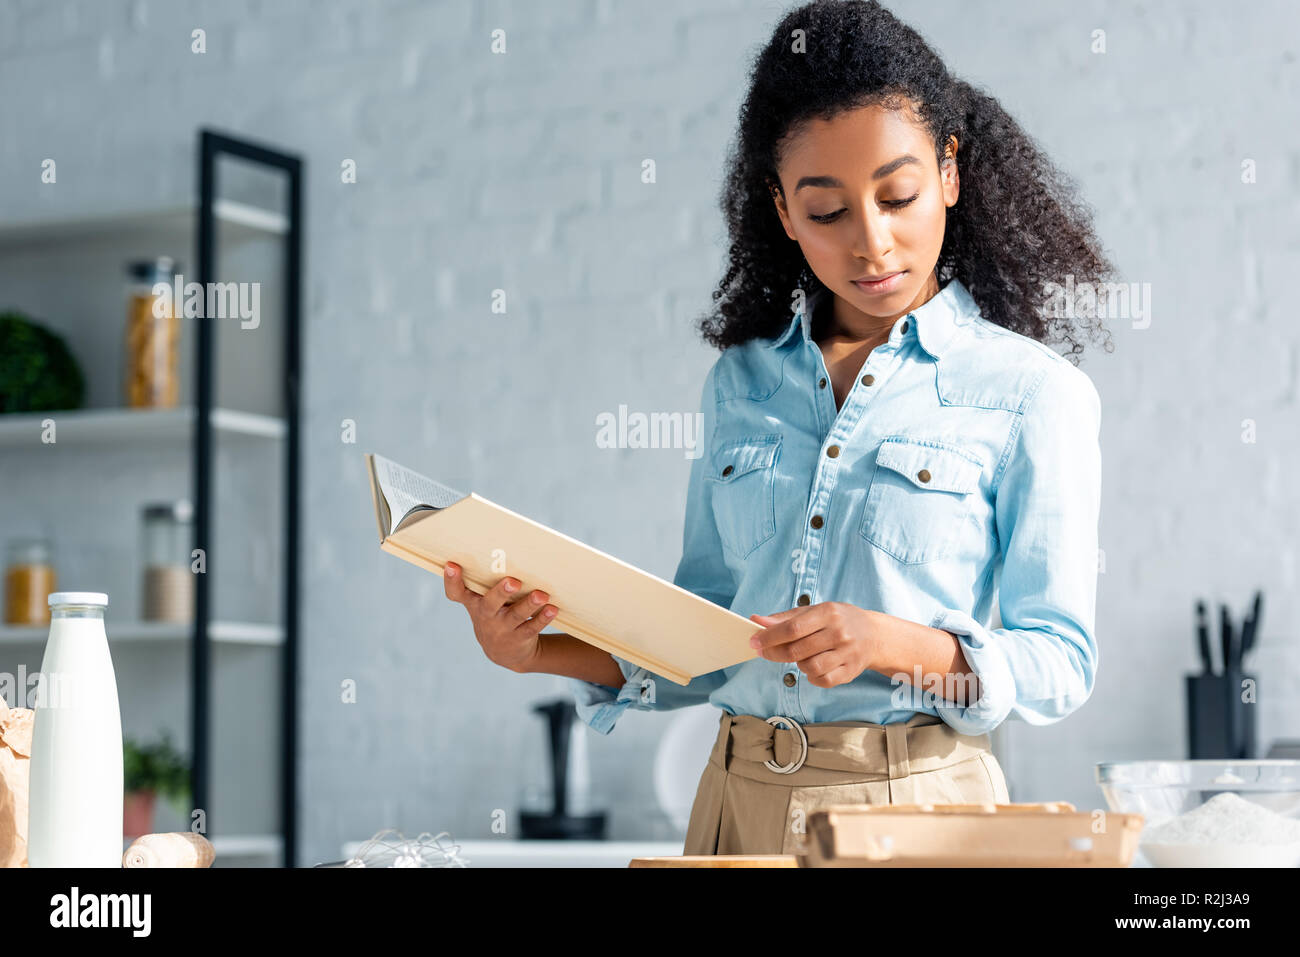 attractive african american girl holding cookbook in kitchen - Stock Image